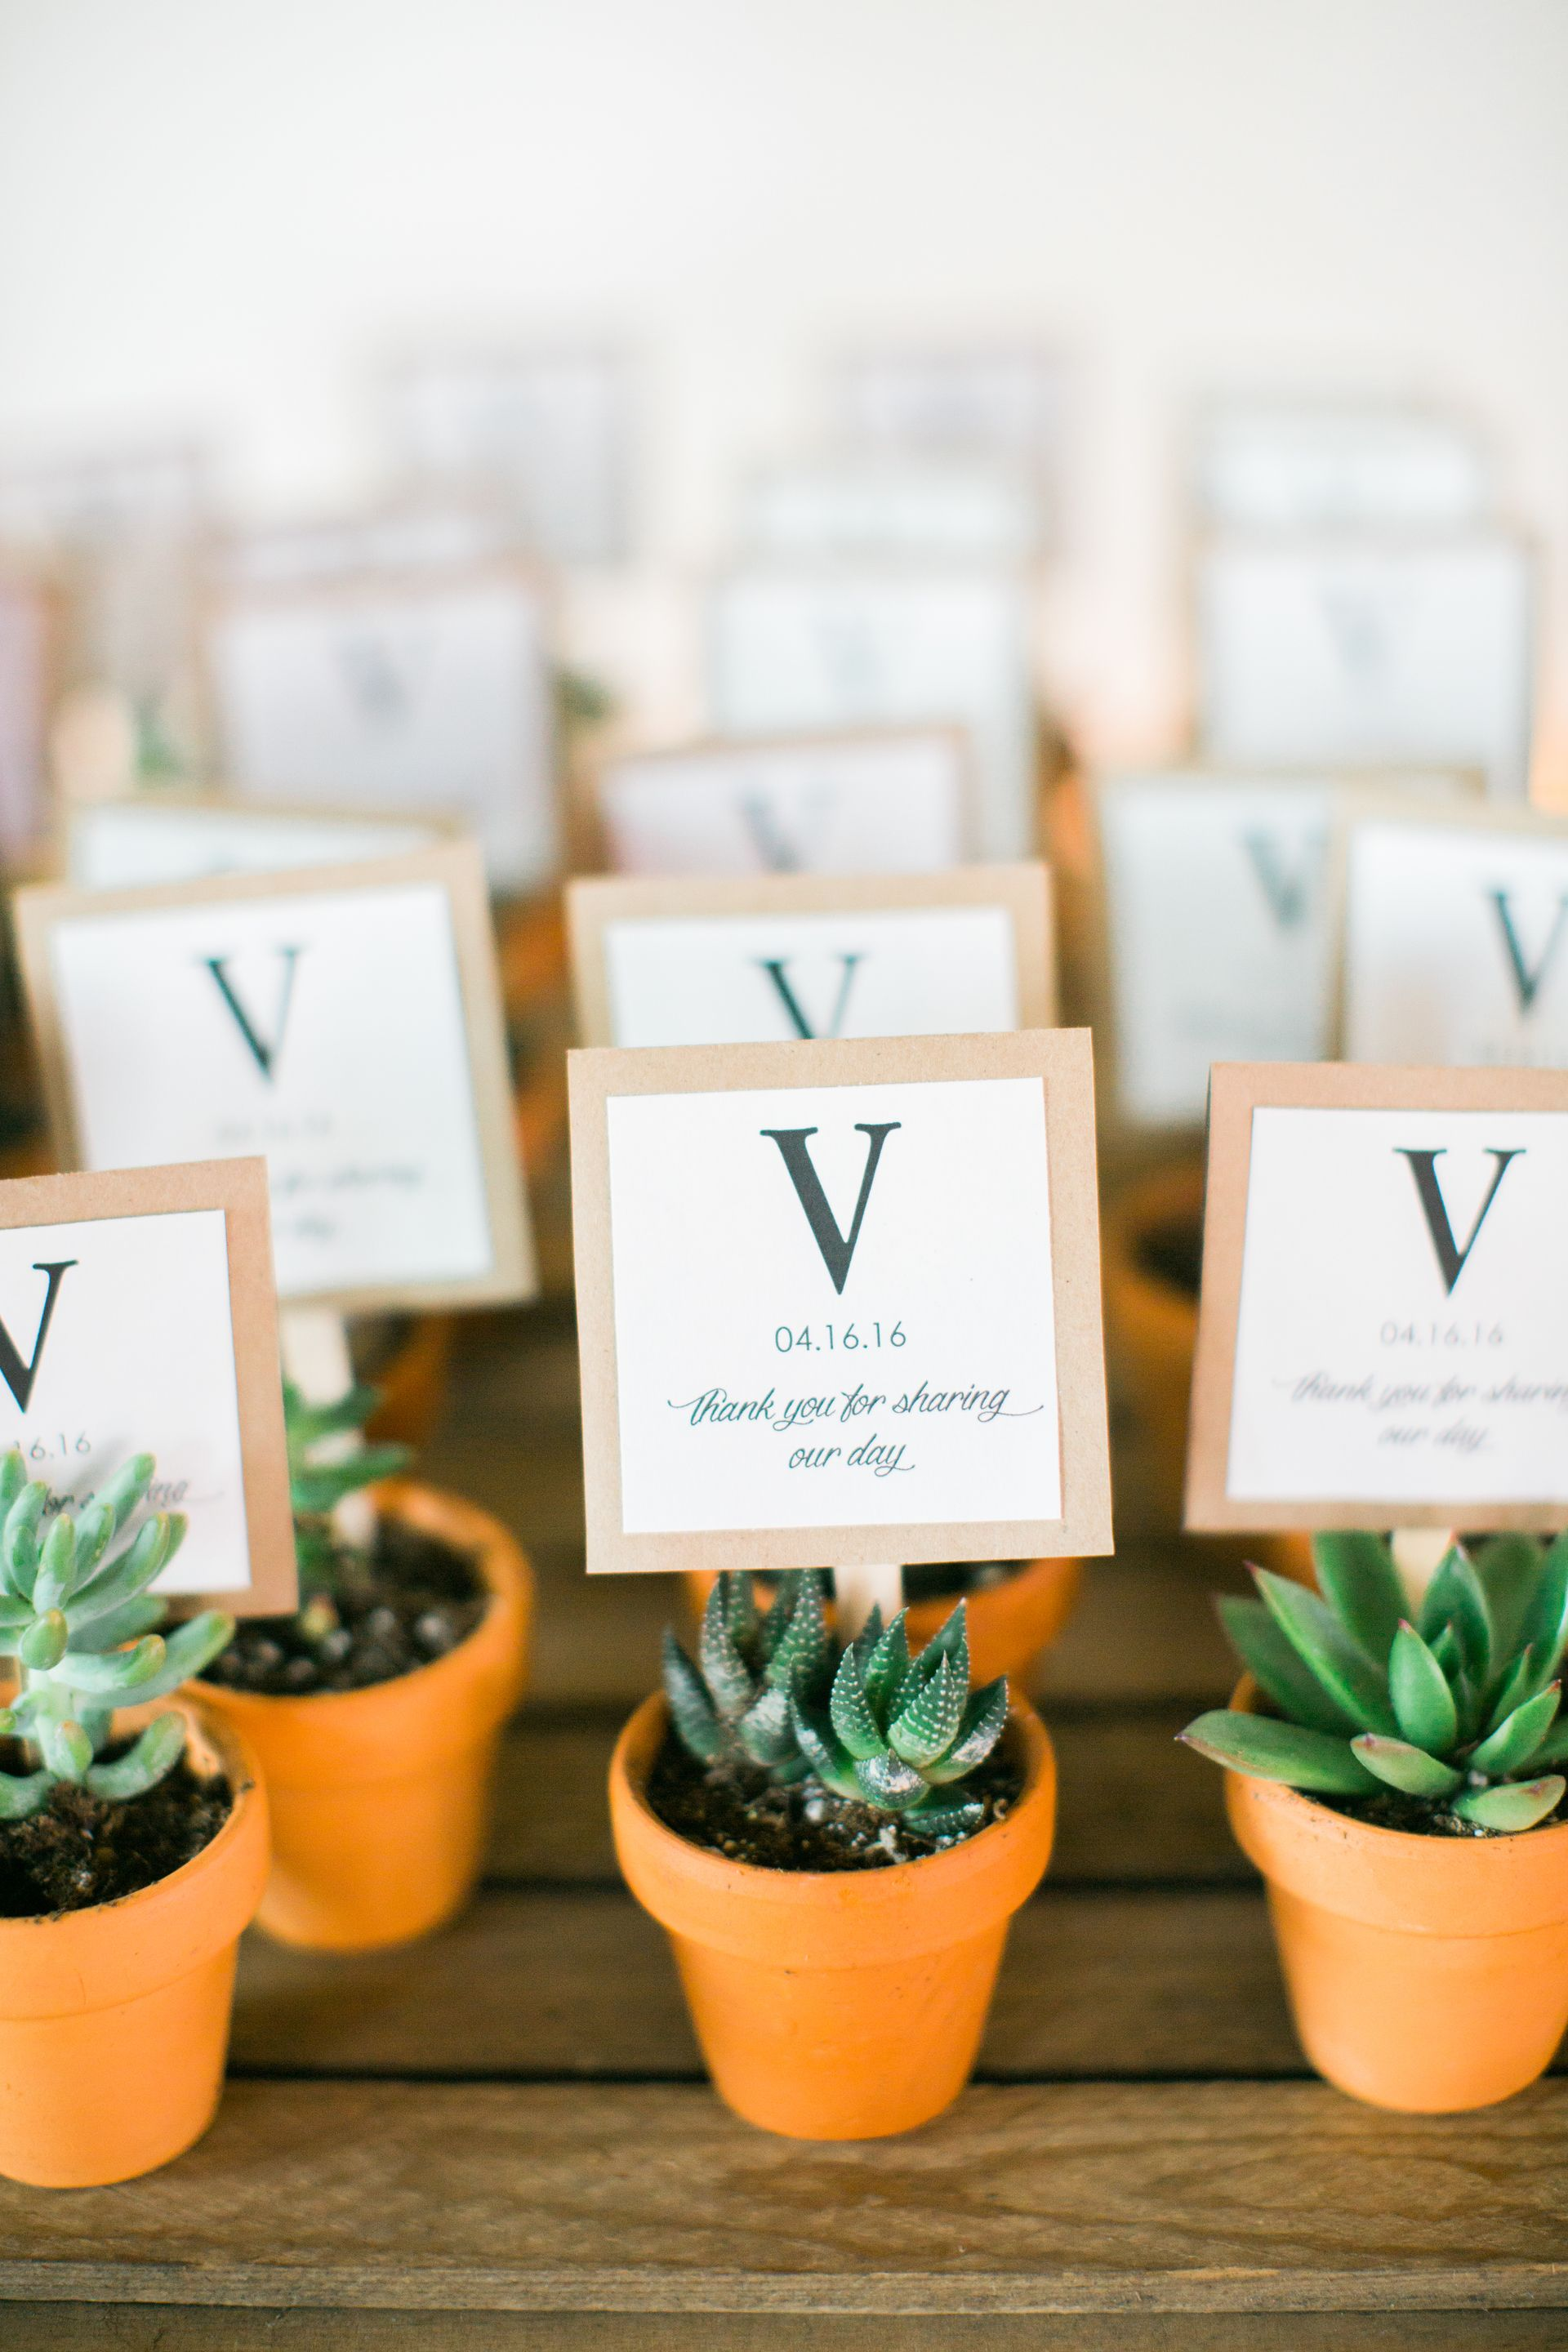 Earthy Blumen Gardens Romance - Sycamore, IL | Potted succulents ...